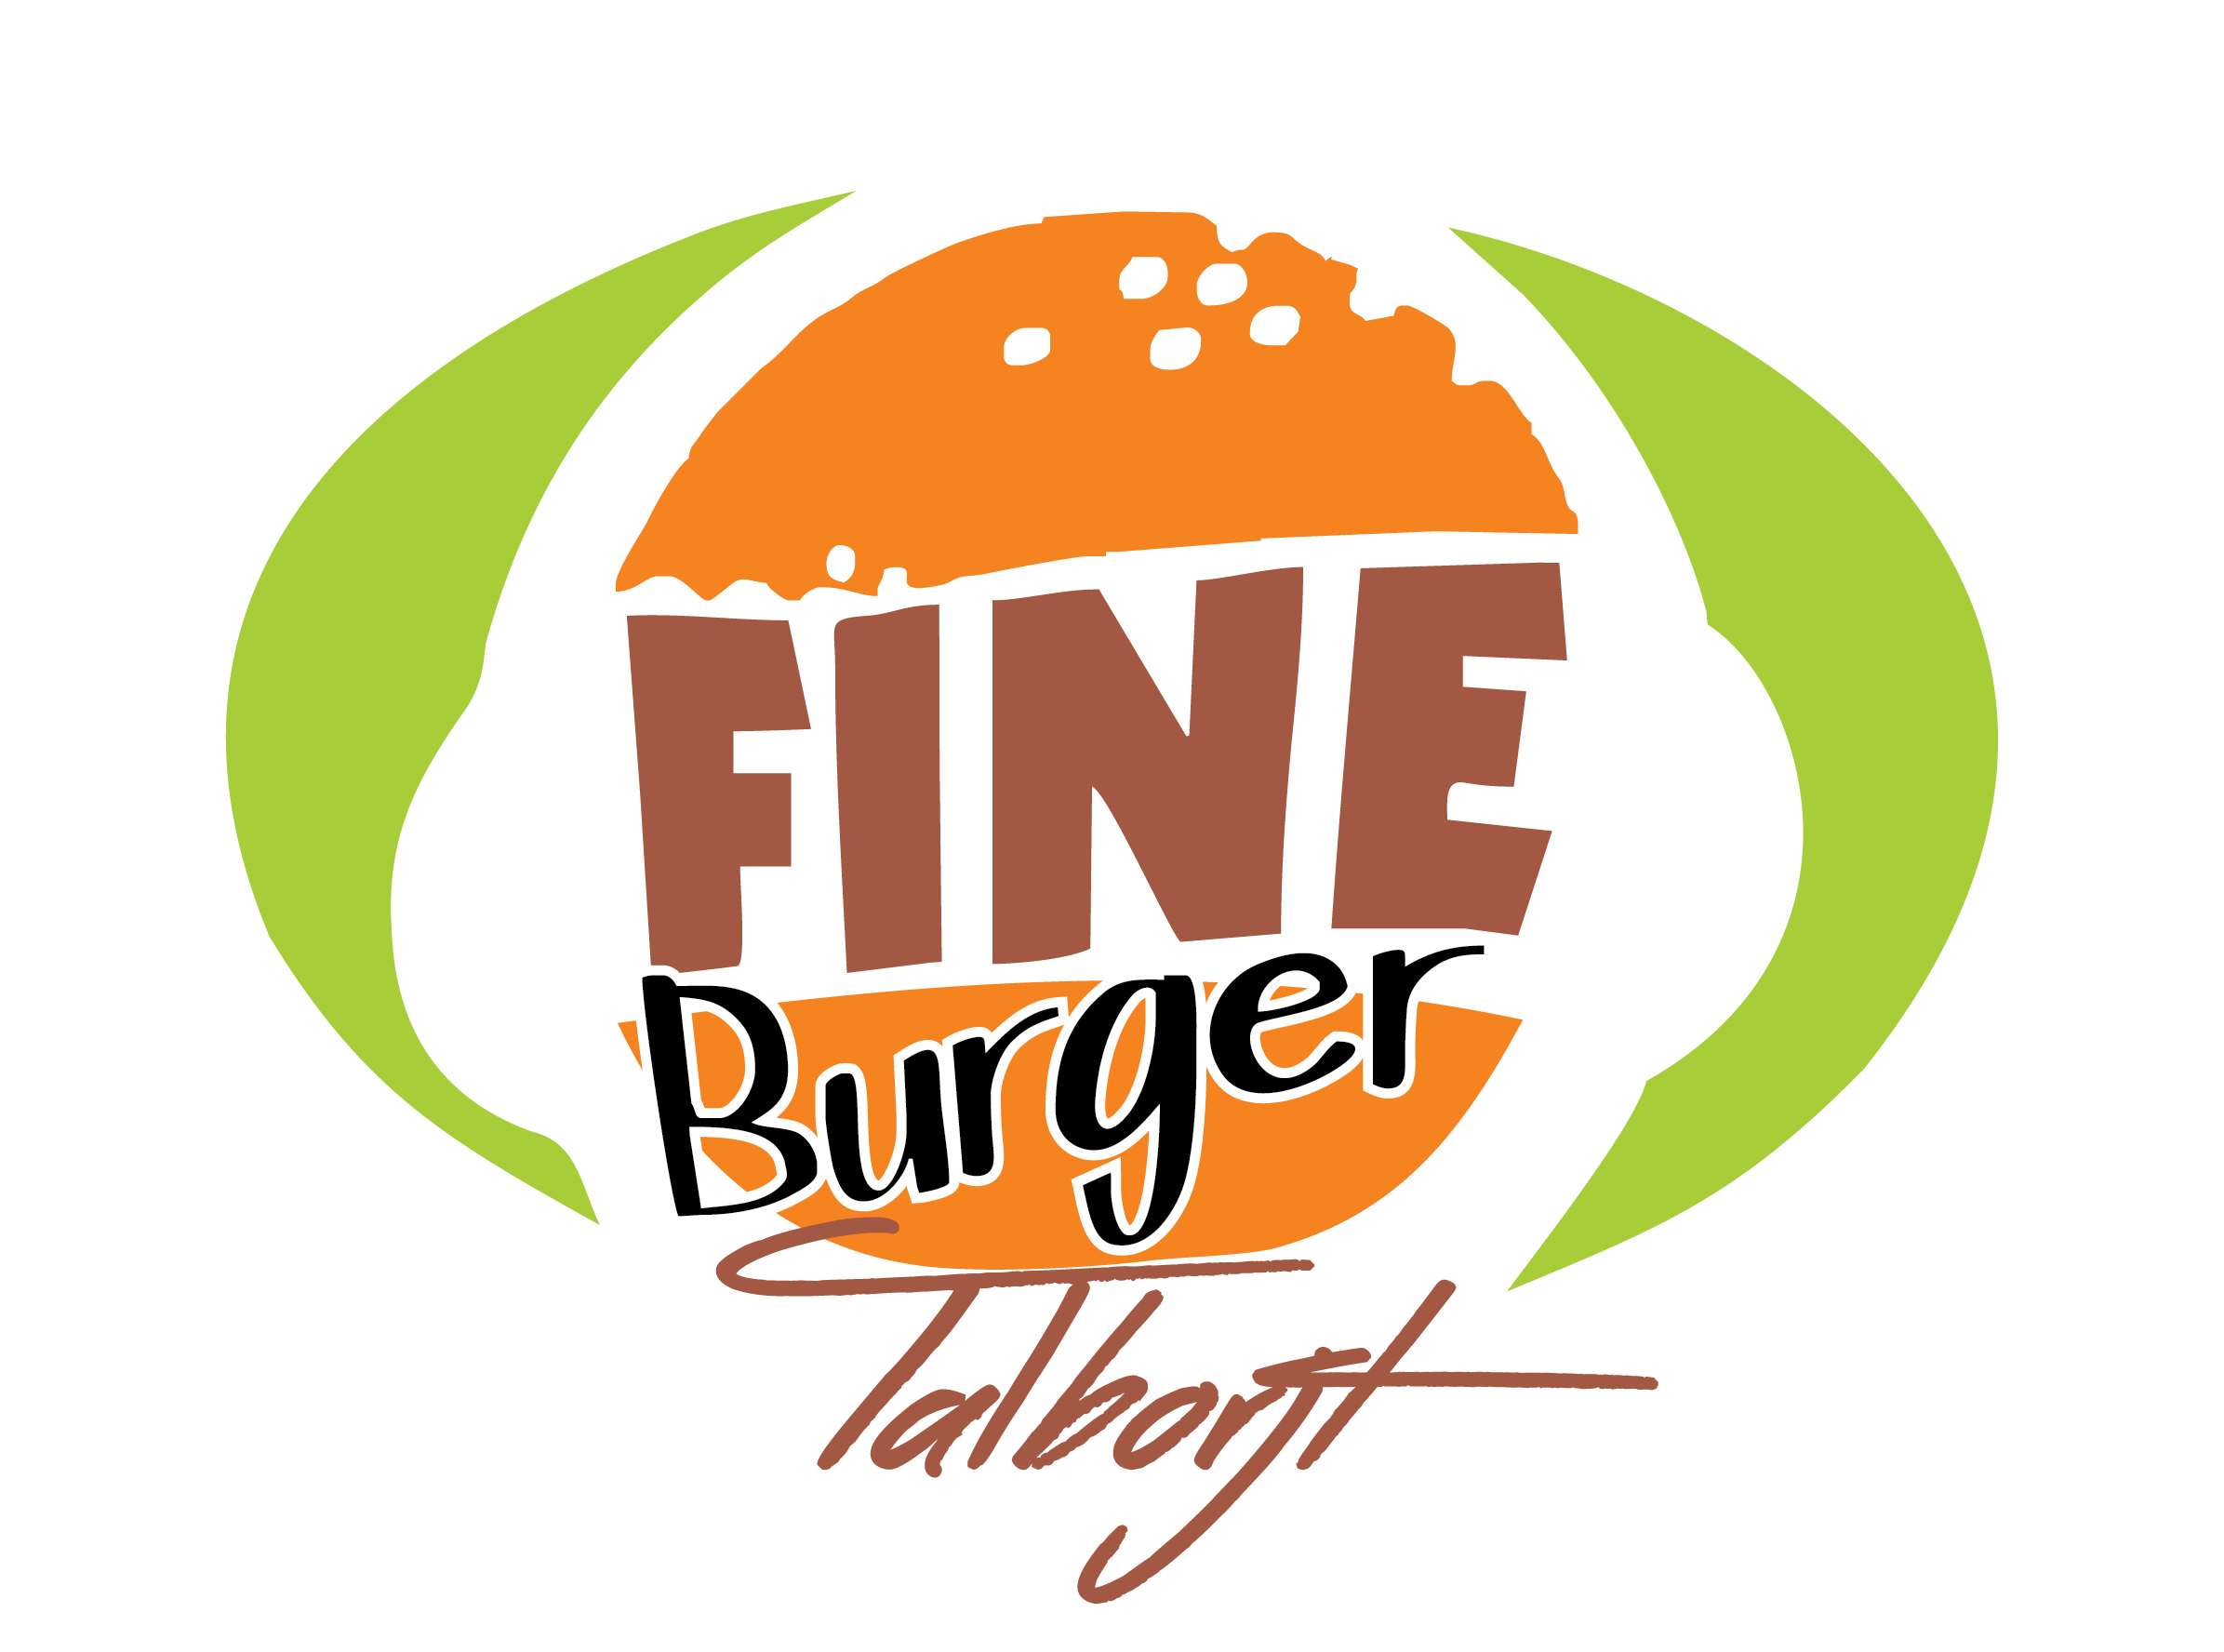 fineBurger Talborjt